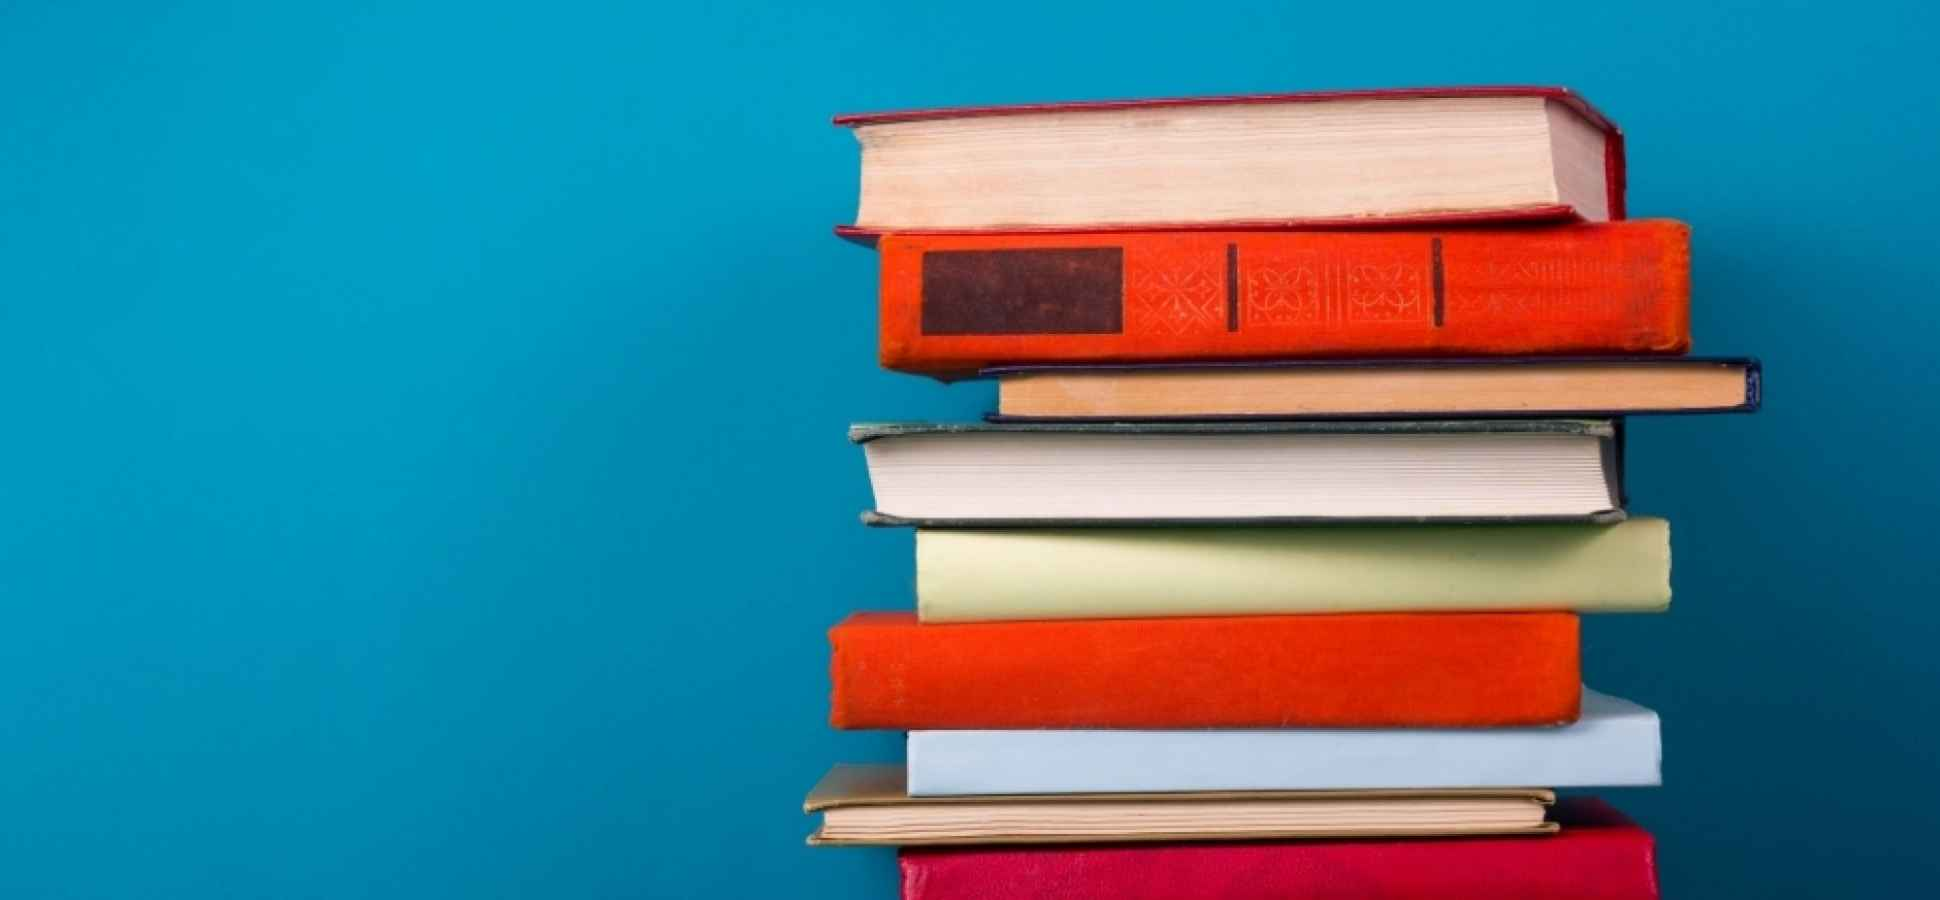 27 Must-Read Books for Providing Outstanding Customer Service